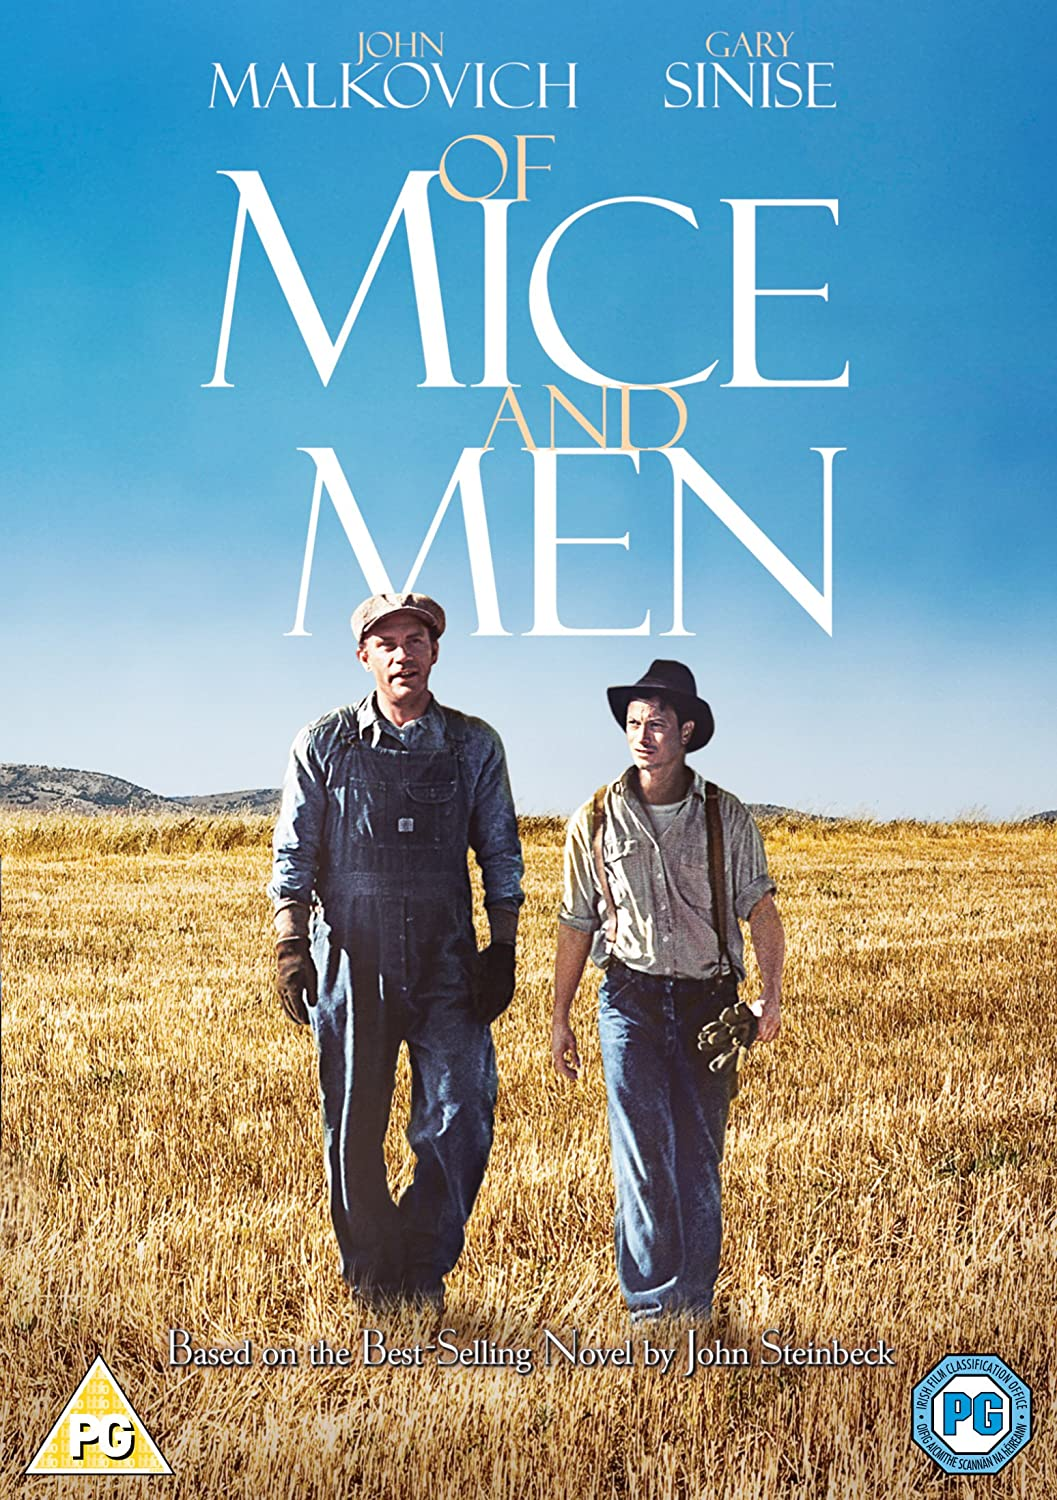 of mice and men book review While the powerlessness of the laboring class is a recurring theme in steinbeck's work of the late 1930s, he narrowed his focus when composing of mice and men (1937), creating an intimate portrait of two men facing a world marked by petty tyranny, misunderstanding, jealousy, and callousness.